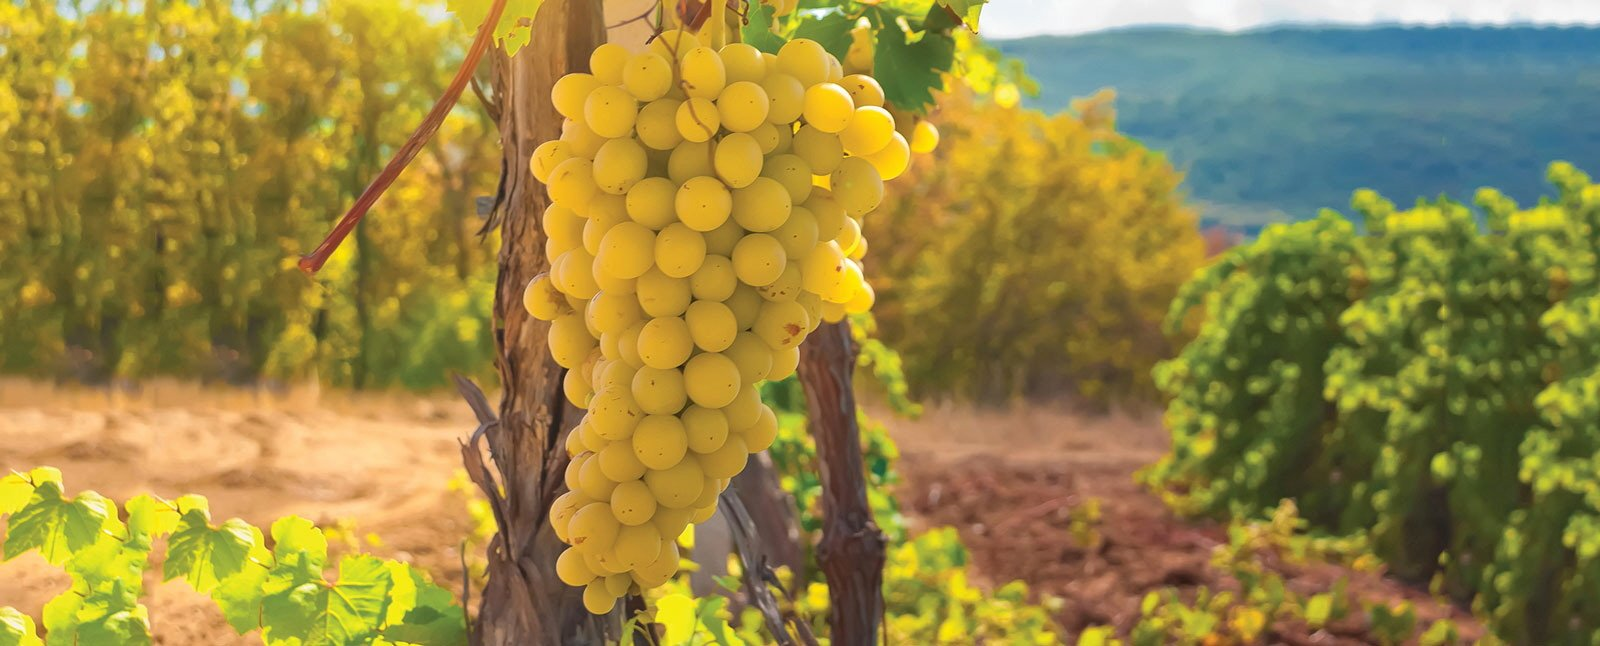 France - Champagne - grapes